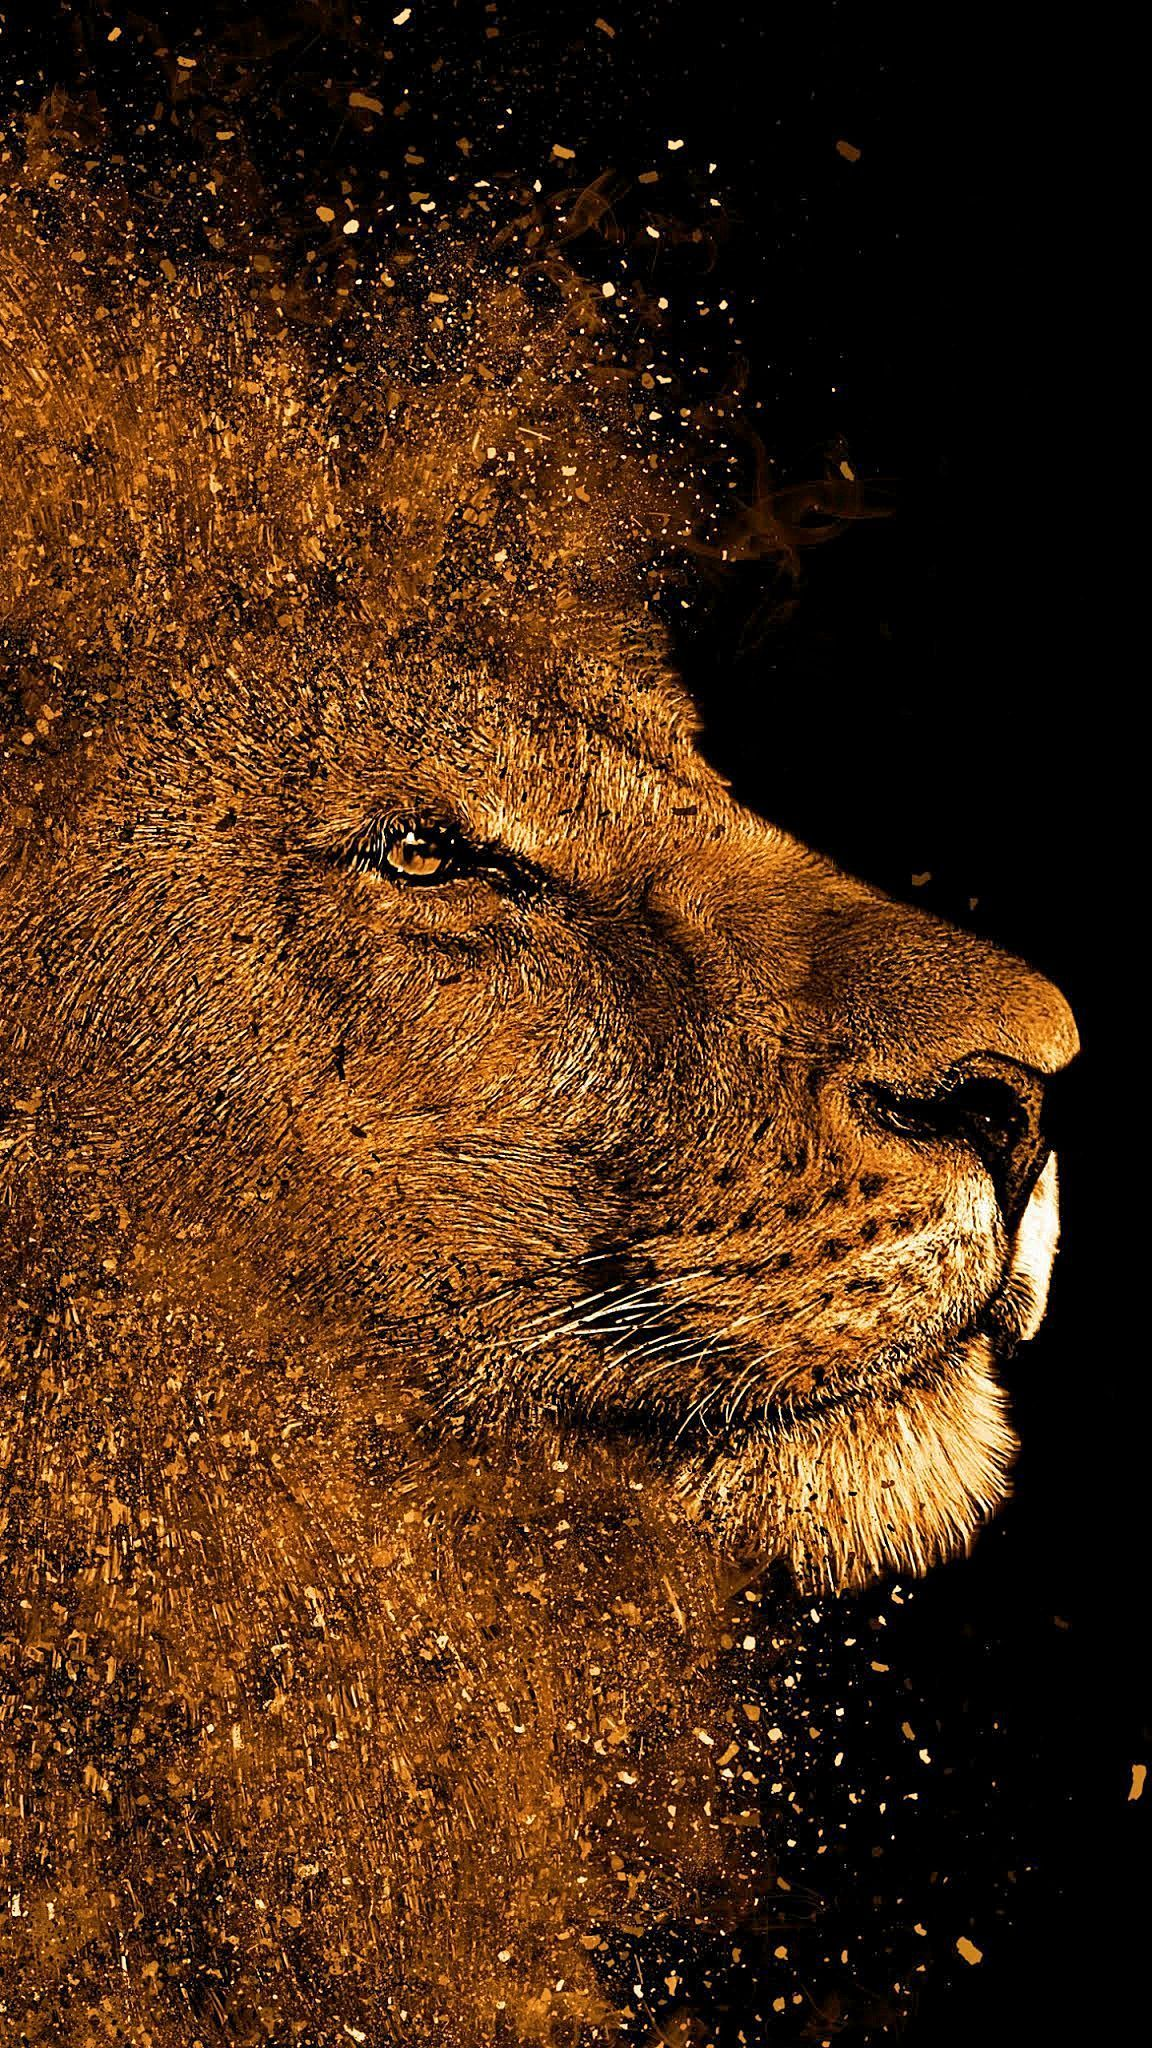 Pin on live wallpaper iphone in 2020 Lion painting, Lion